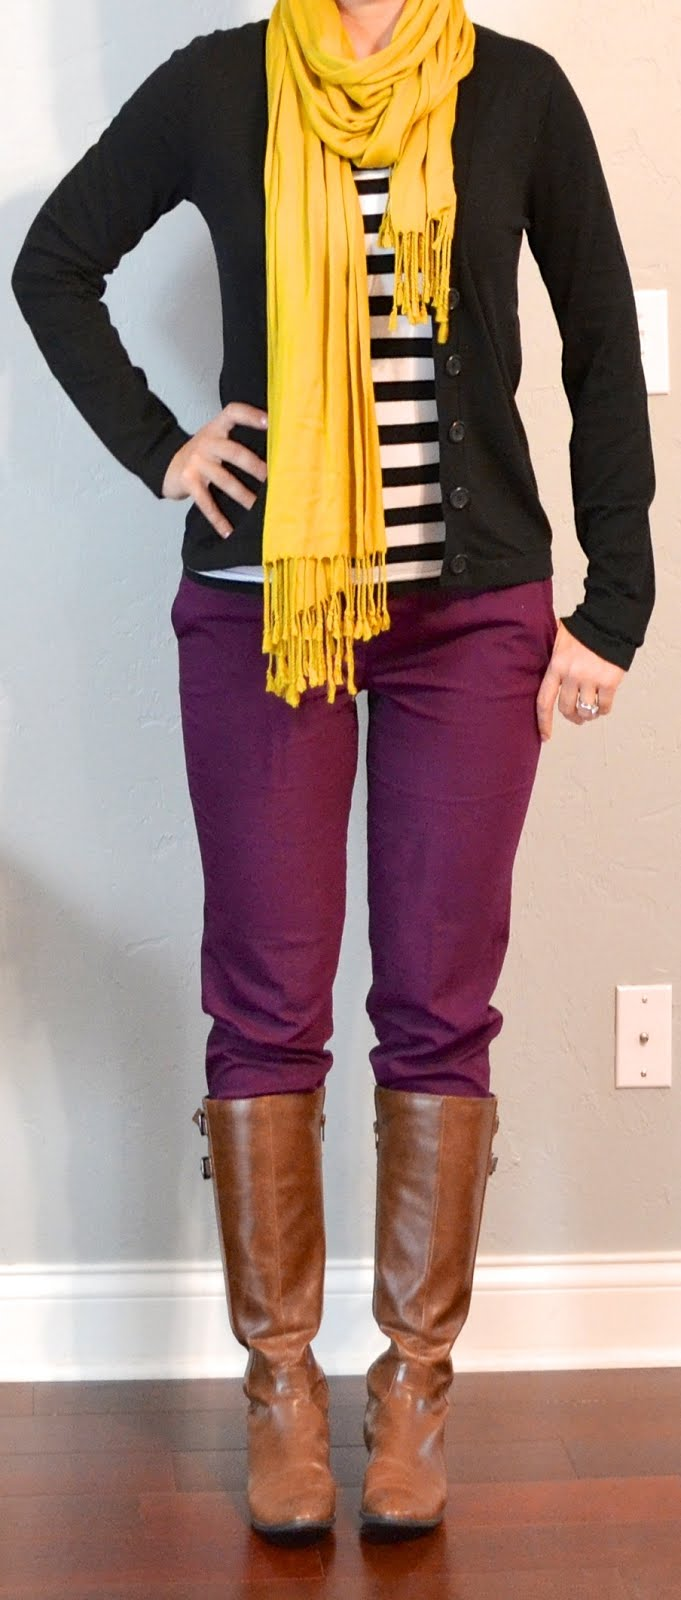 Outfit post striped top burgundy/purple cropped pants boots black cardigan